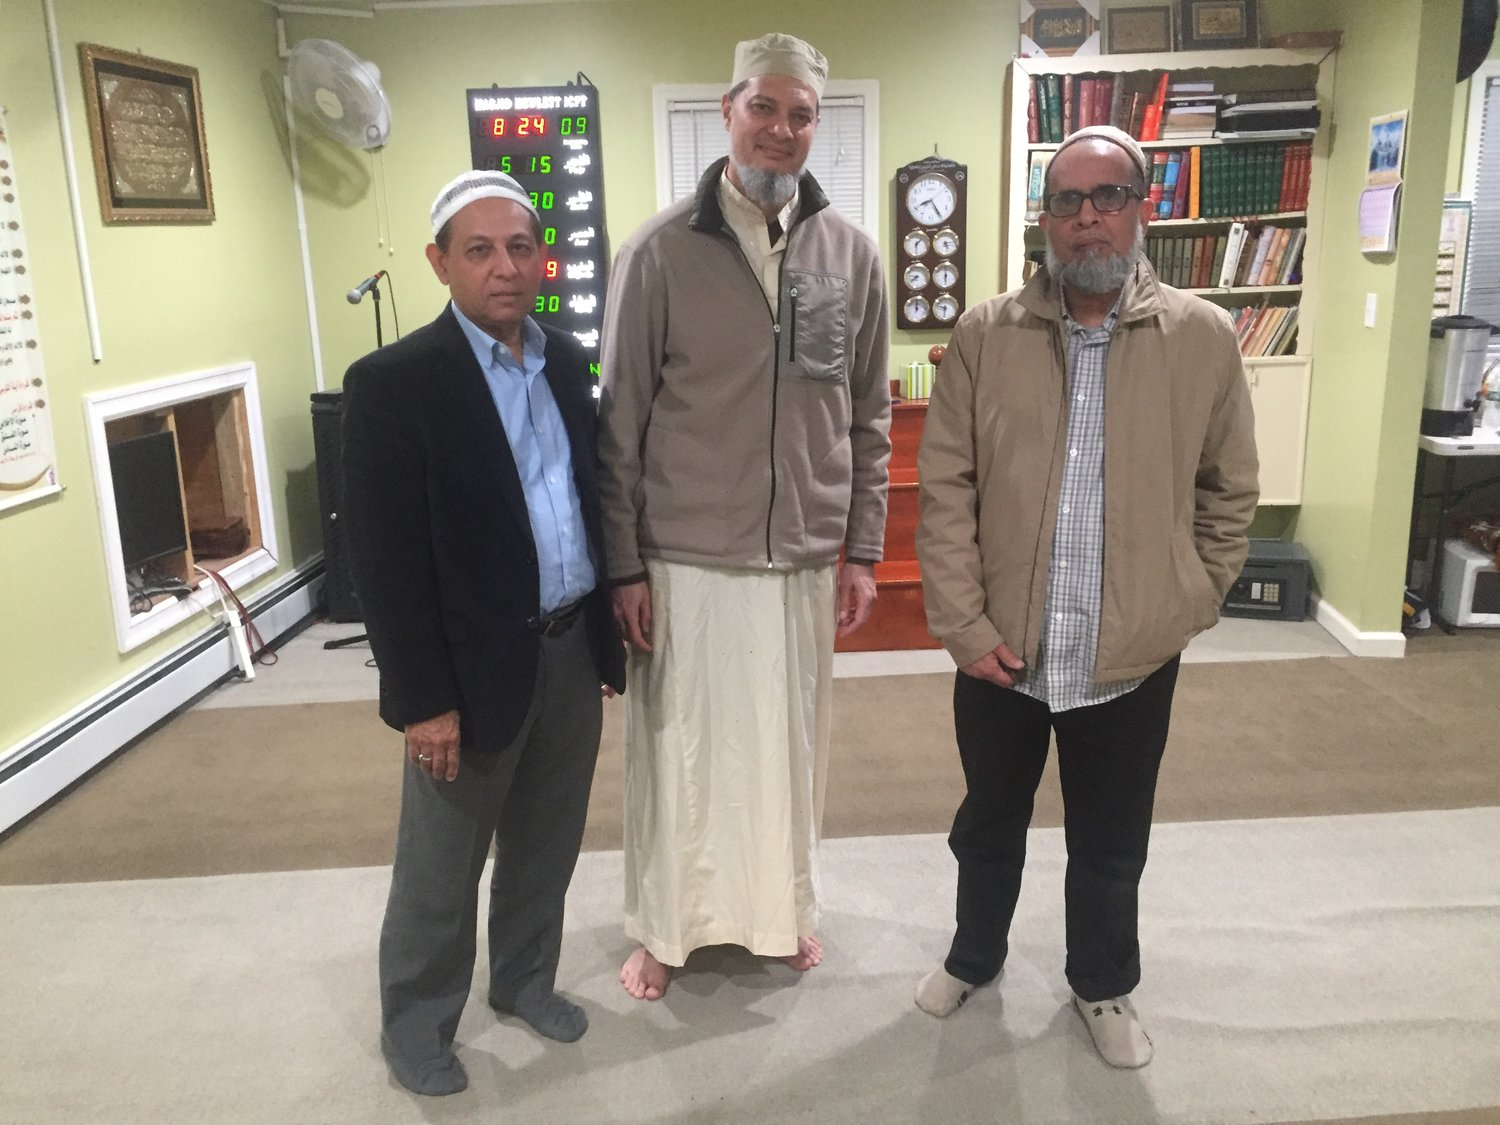 Islamic Center of the Five Town members from left, President Tanvir Ahmad, Gohar Ayub and Eqbal Rasheed explained the importance of Ramadan within the Muslim faith.